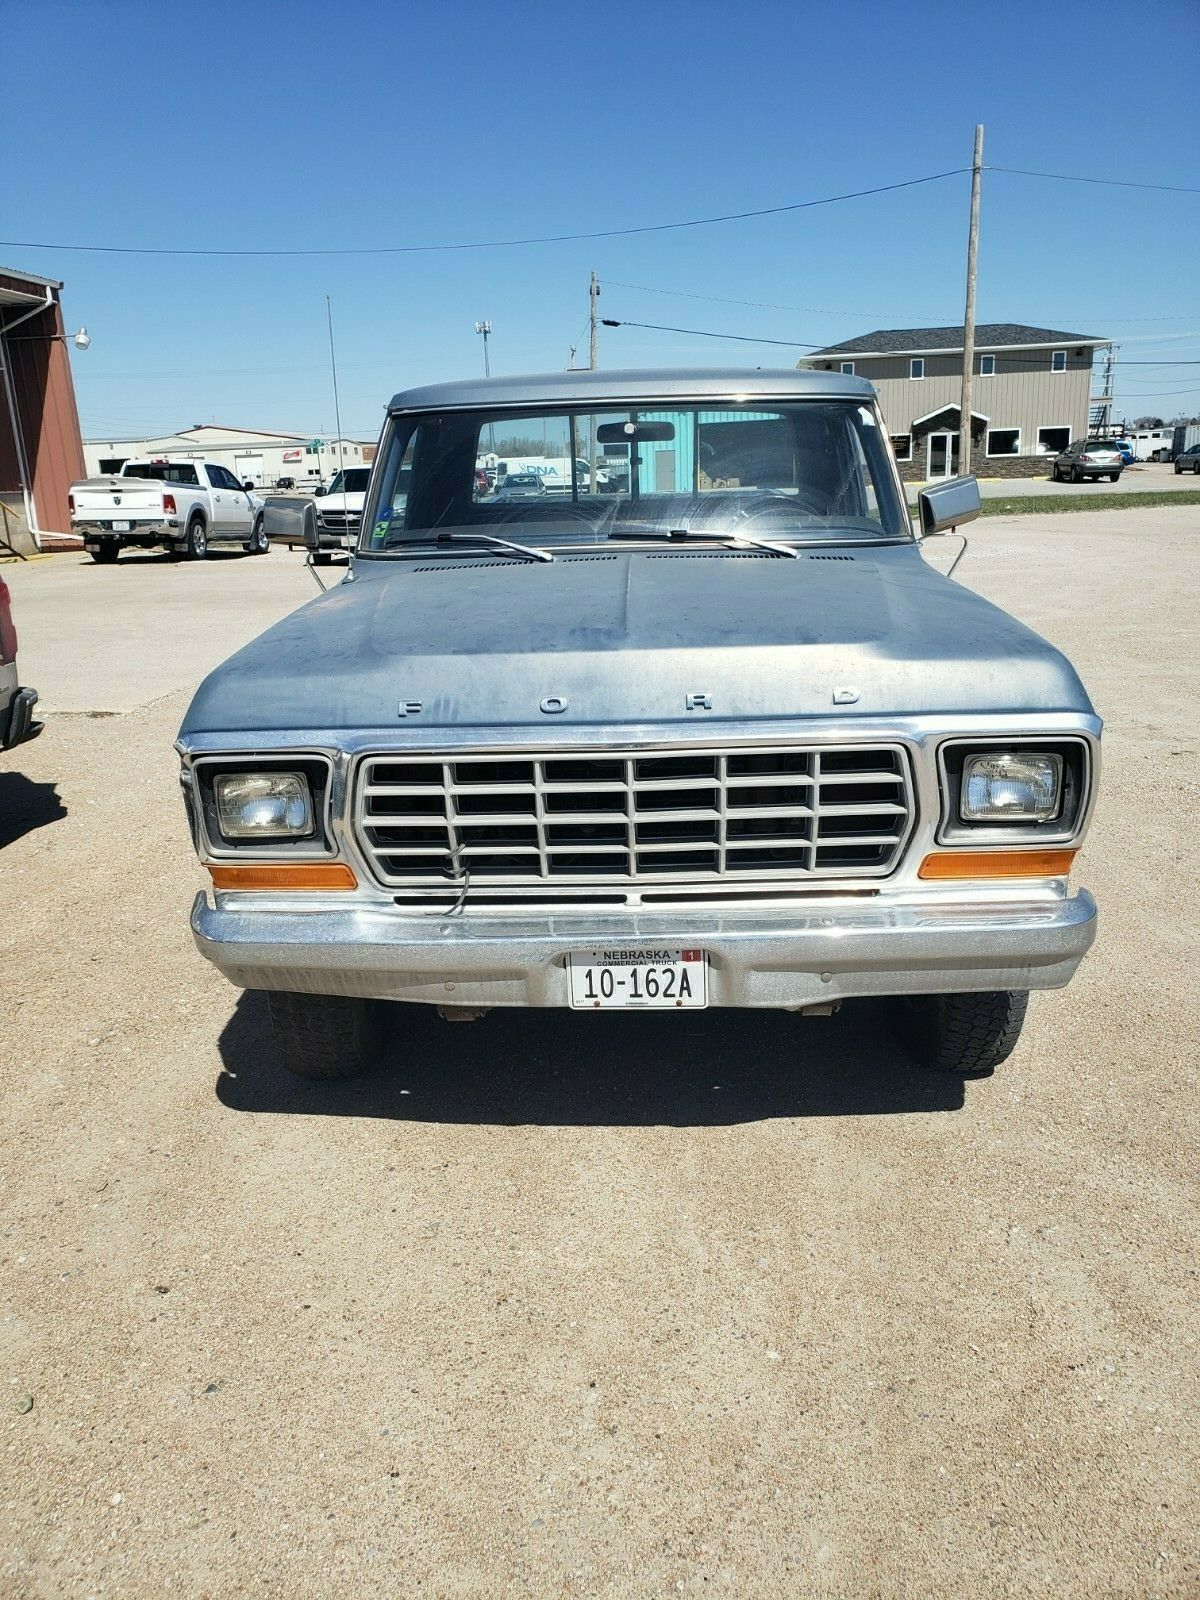 1979 Ford F250 For Sale : Supercab,, Automaitc,, 44,387, Original, Miles!, F-250, Columbus,, Nebraska,, United, States